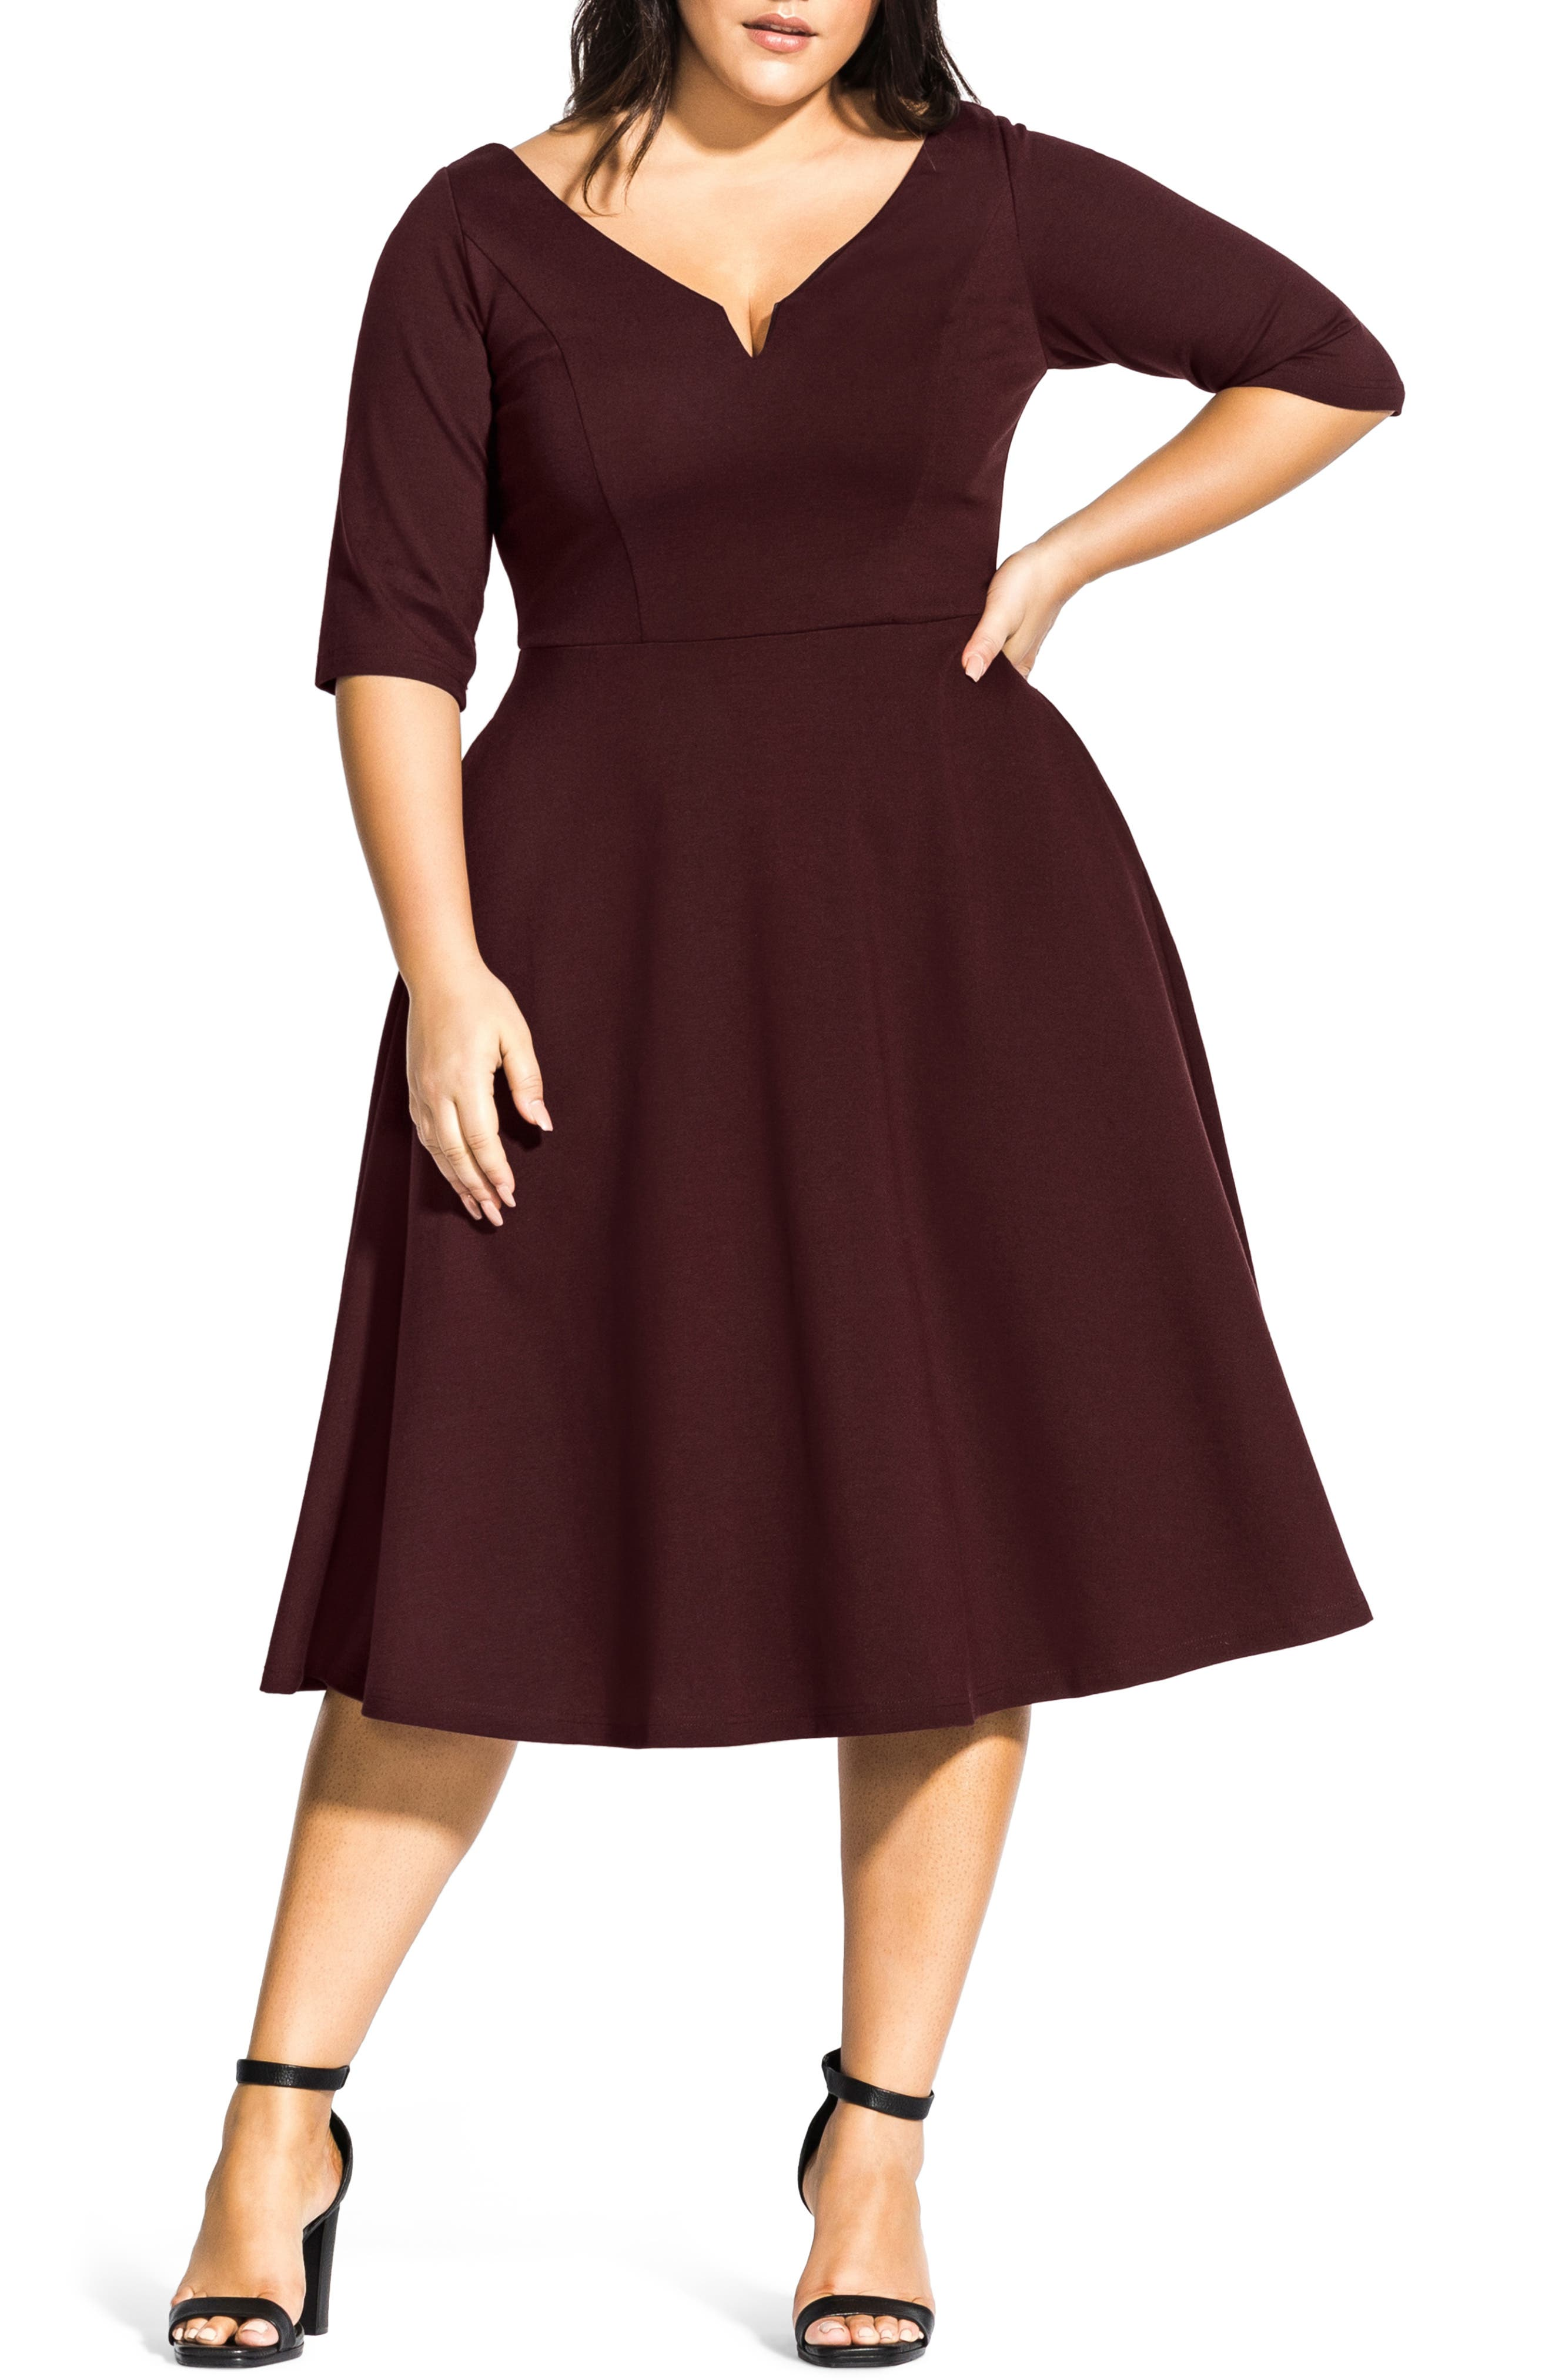 Vintage 50s Dresses: Best 1950s Dress Styles Plus Size Womens City Chic Cute Girl Dress Size X-Small - Red $89.00 AT vintagedancer.com